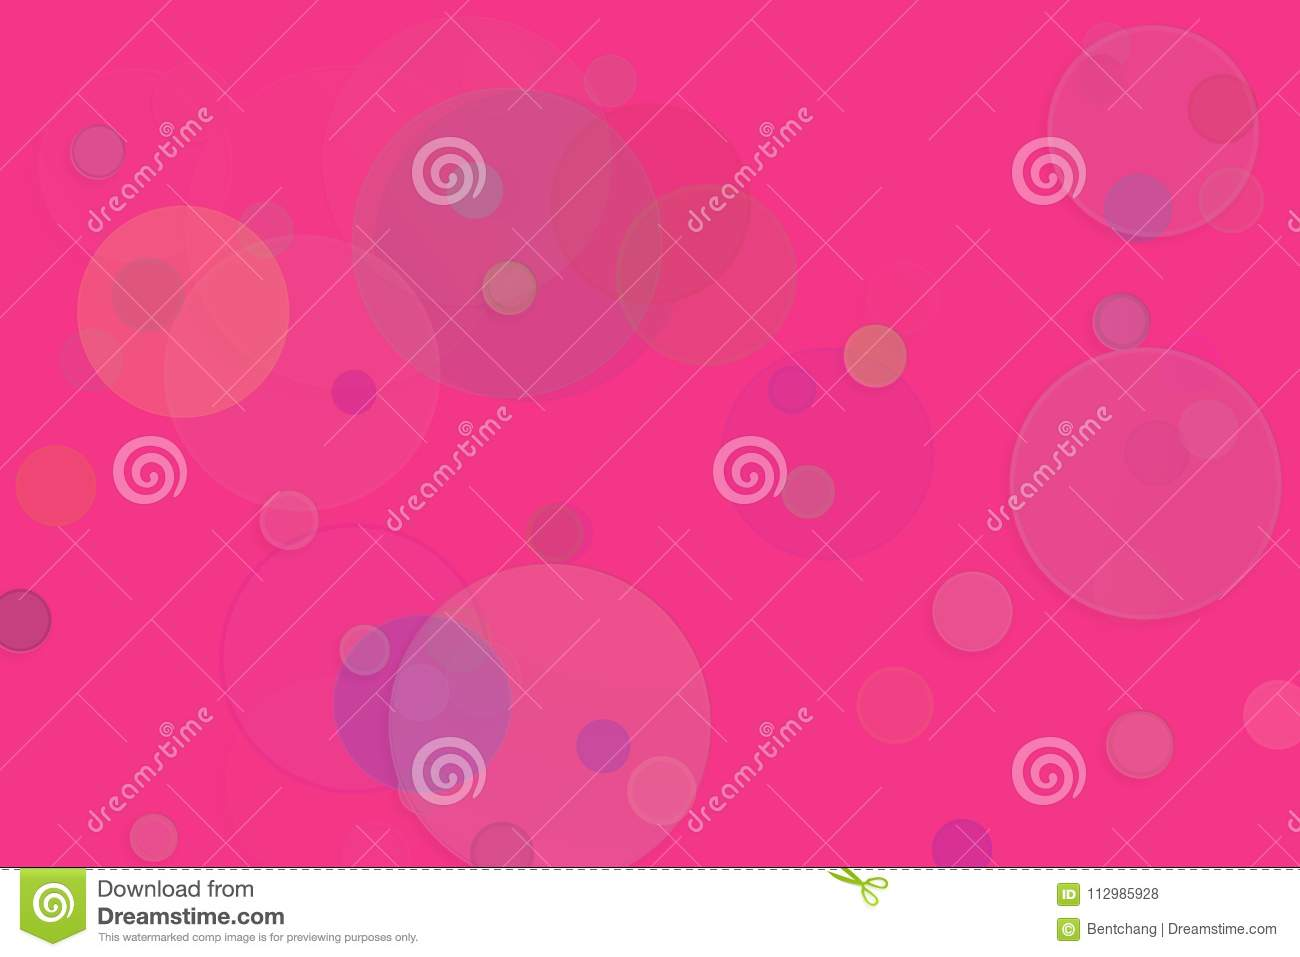 Shape background pattern, good for graphic design. Painting, fashion, generative & stroke.